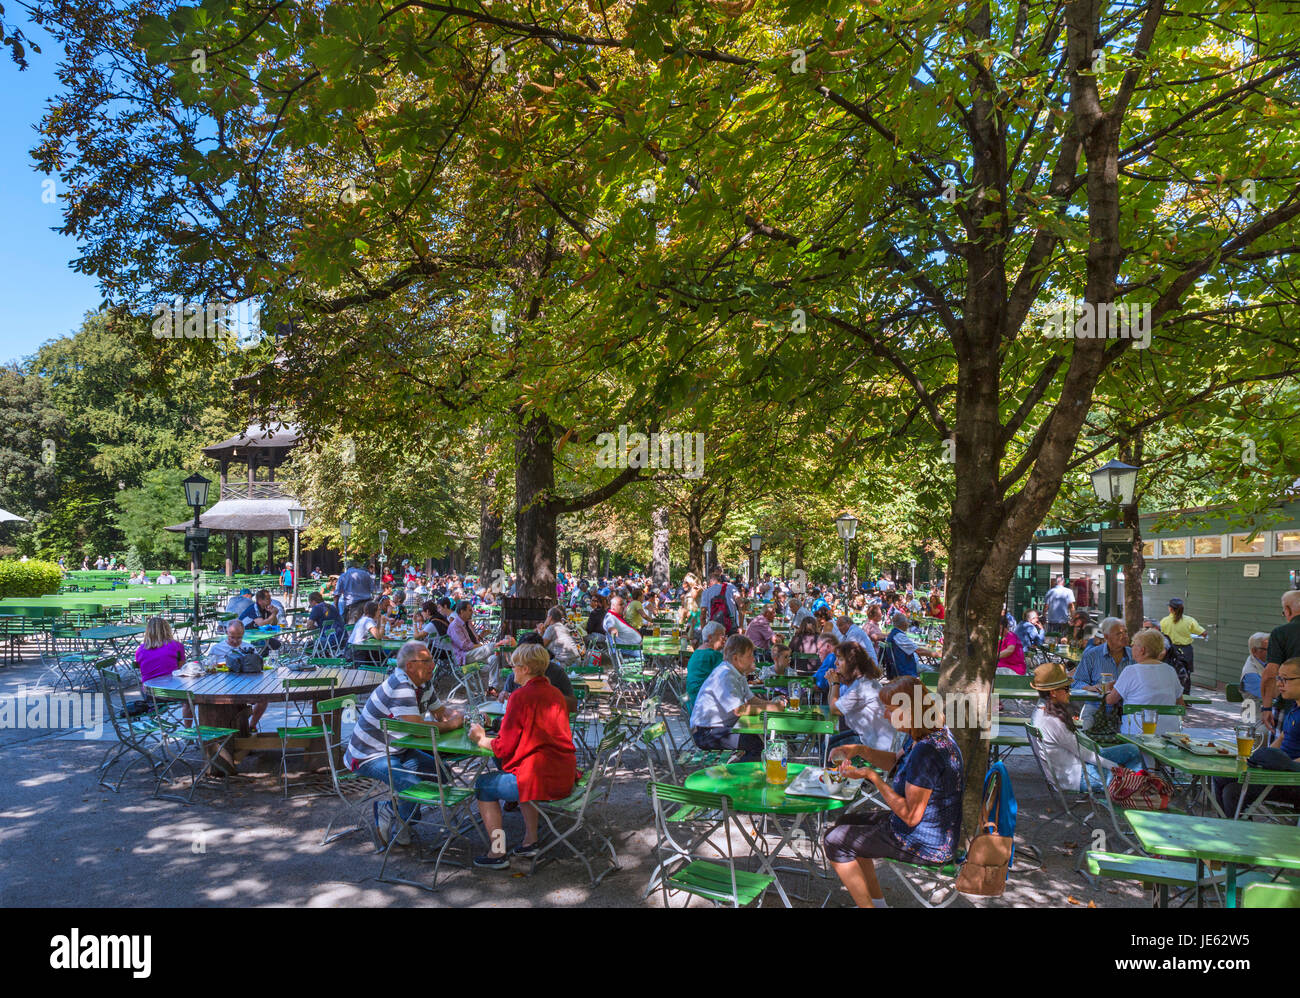 Beer Garden at the Chinesischen Turm (Chinese Tower) in the Englischer Garten, Munich, Bavaria, Germany - Stock Image